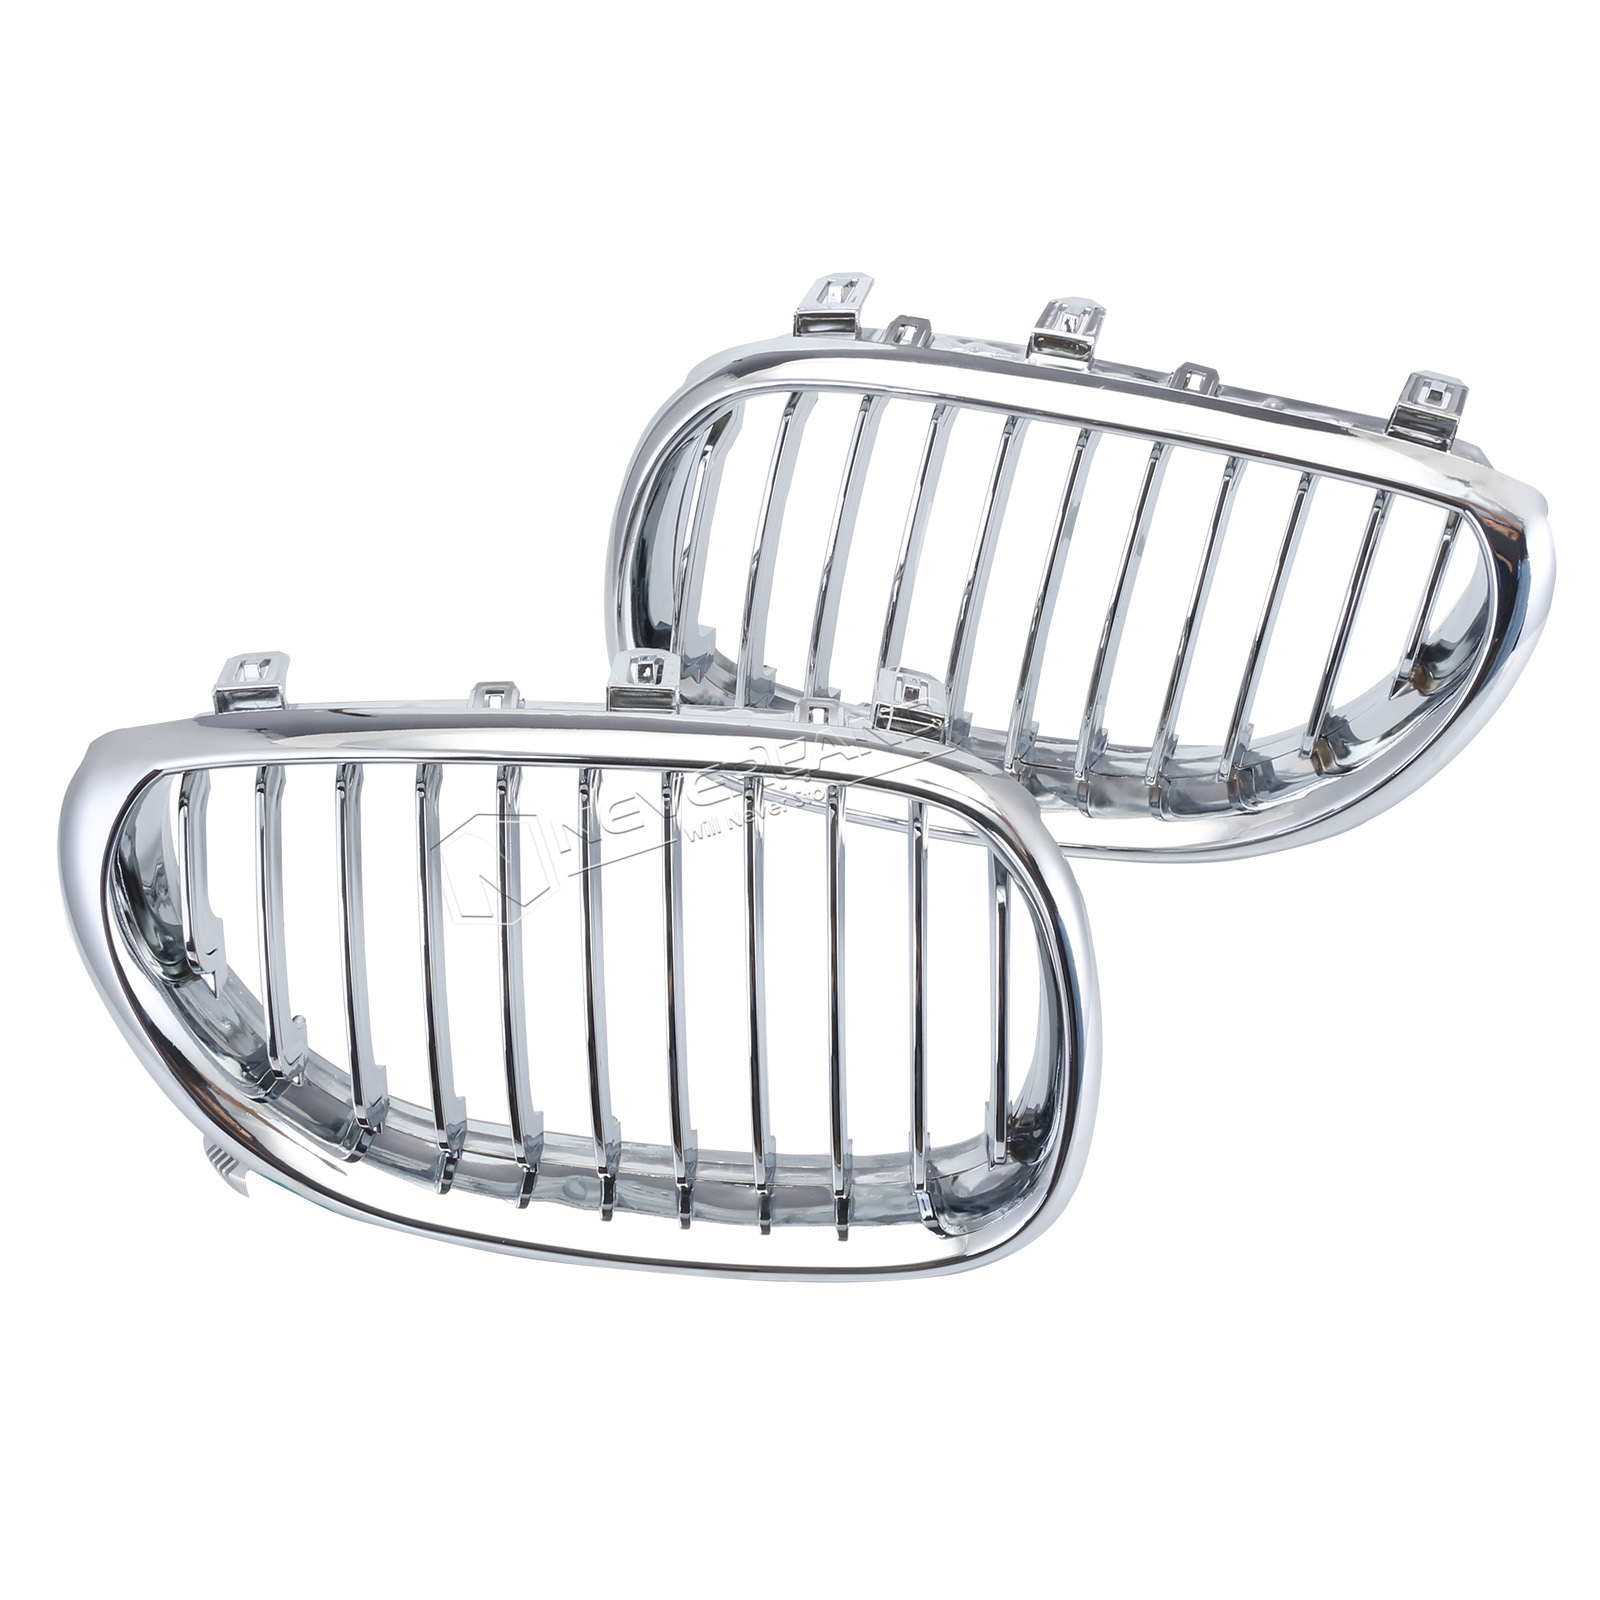 2x Front Kidney Grilles For Bmw E60 E61 M5 03 09 520d 520i